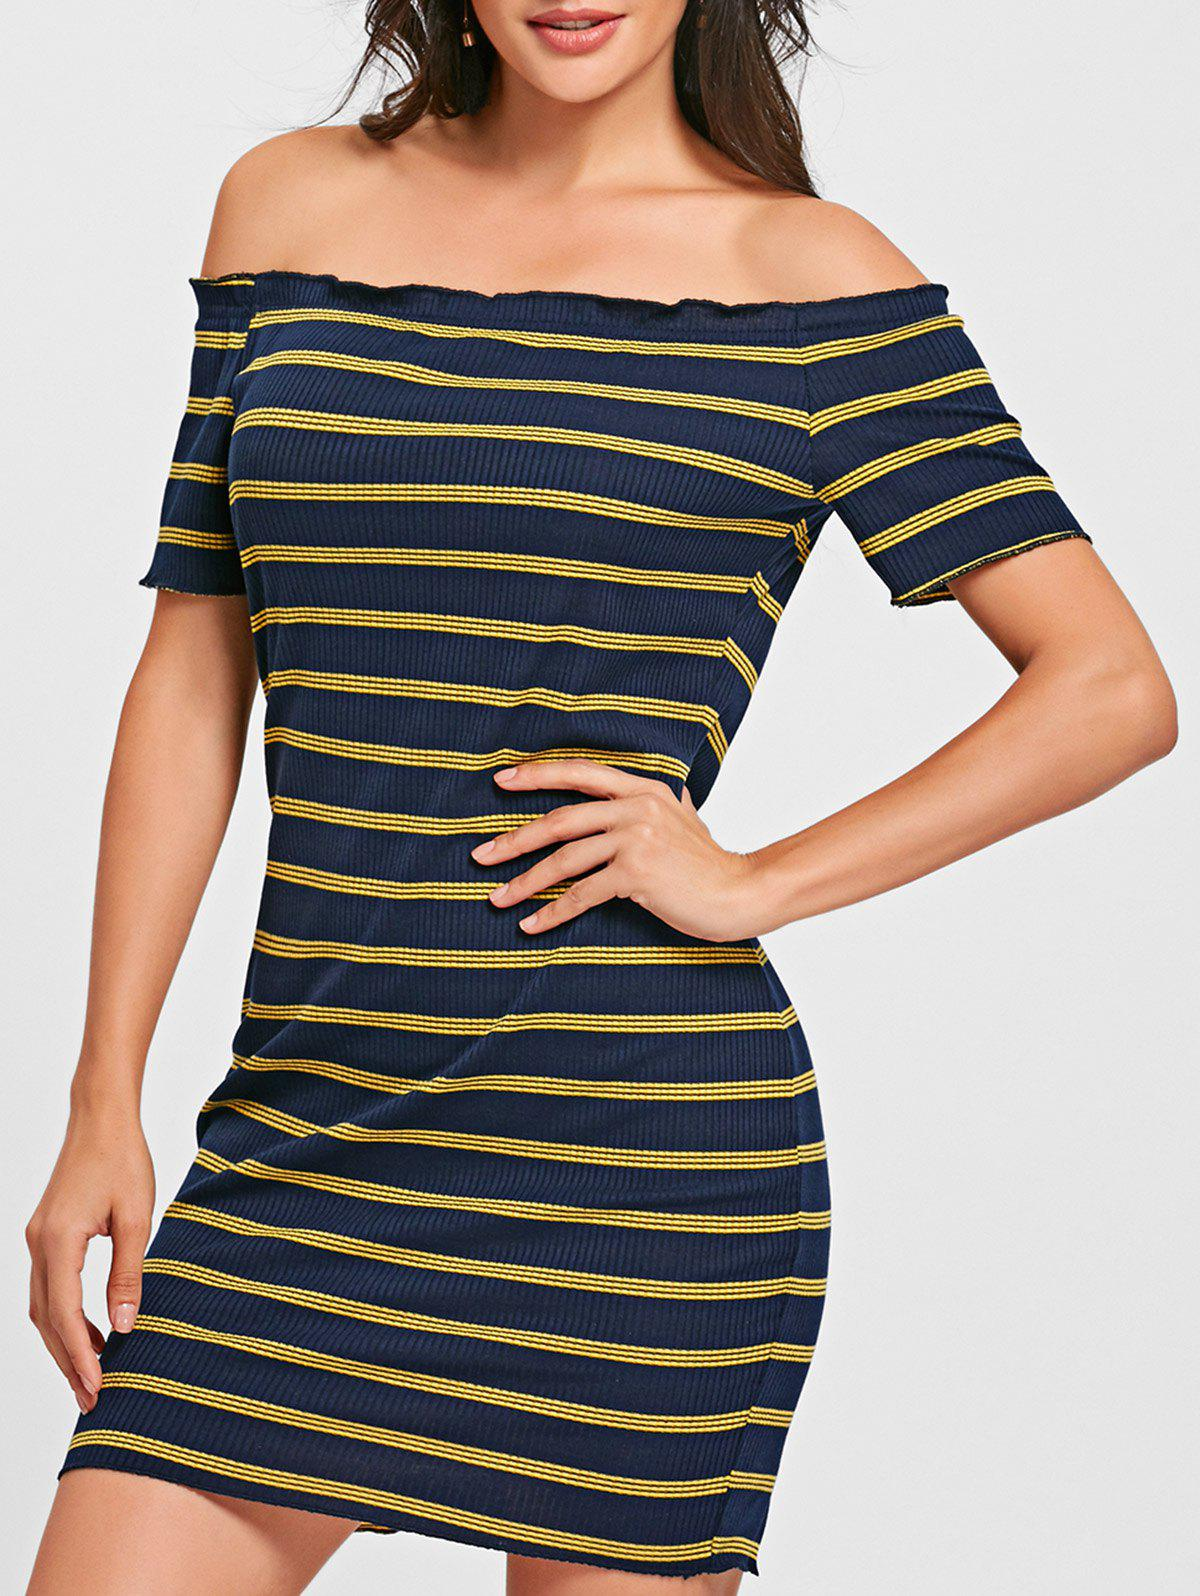 Off The Shoulder Striped Bodycon Dress - BLUE/YELLOW L